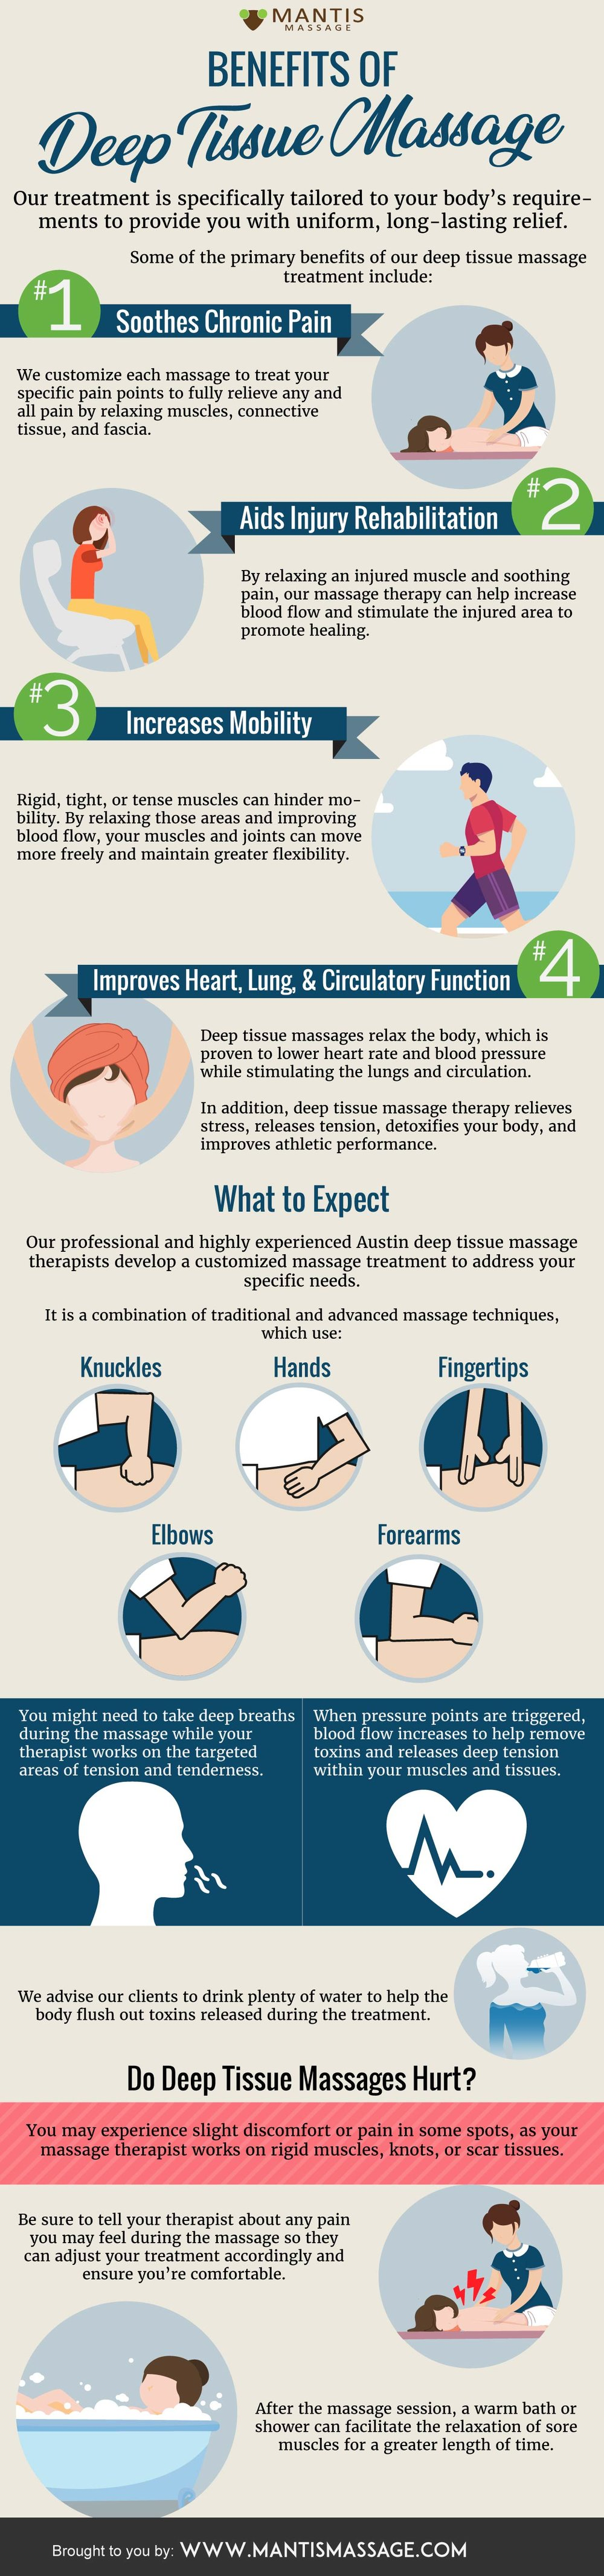 Benefits of Deep Tissue Massage.jpg